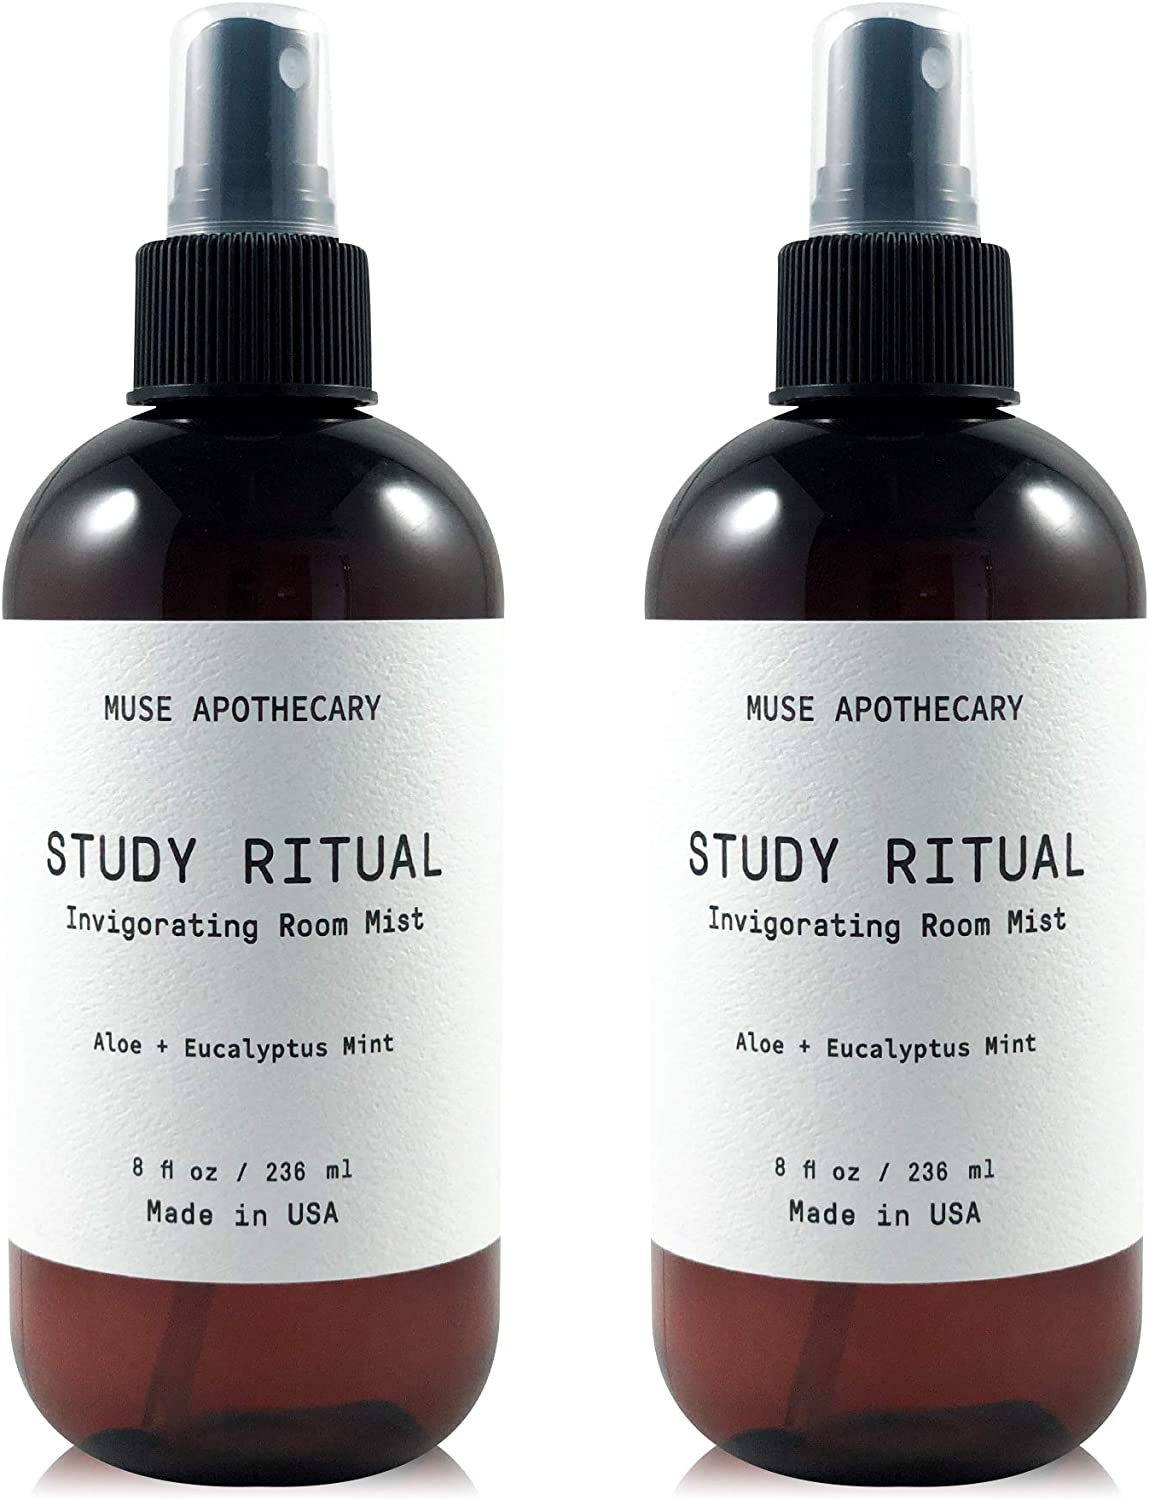 Muse Bath Apothecary Study Ritual - Aromatic and Invigorating Room Mist, 8 oz, Infused with Natural Essential Oils - Aloe + Eucalyptus Mint, 2 Pack